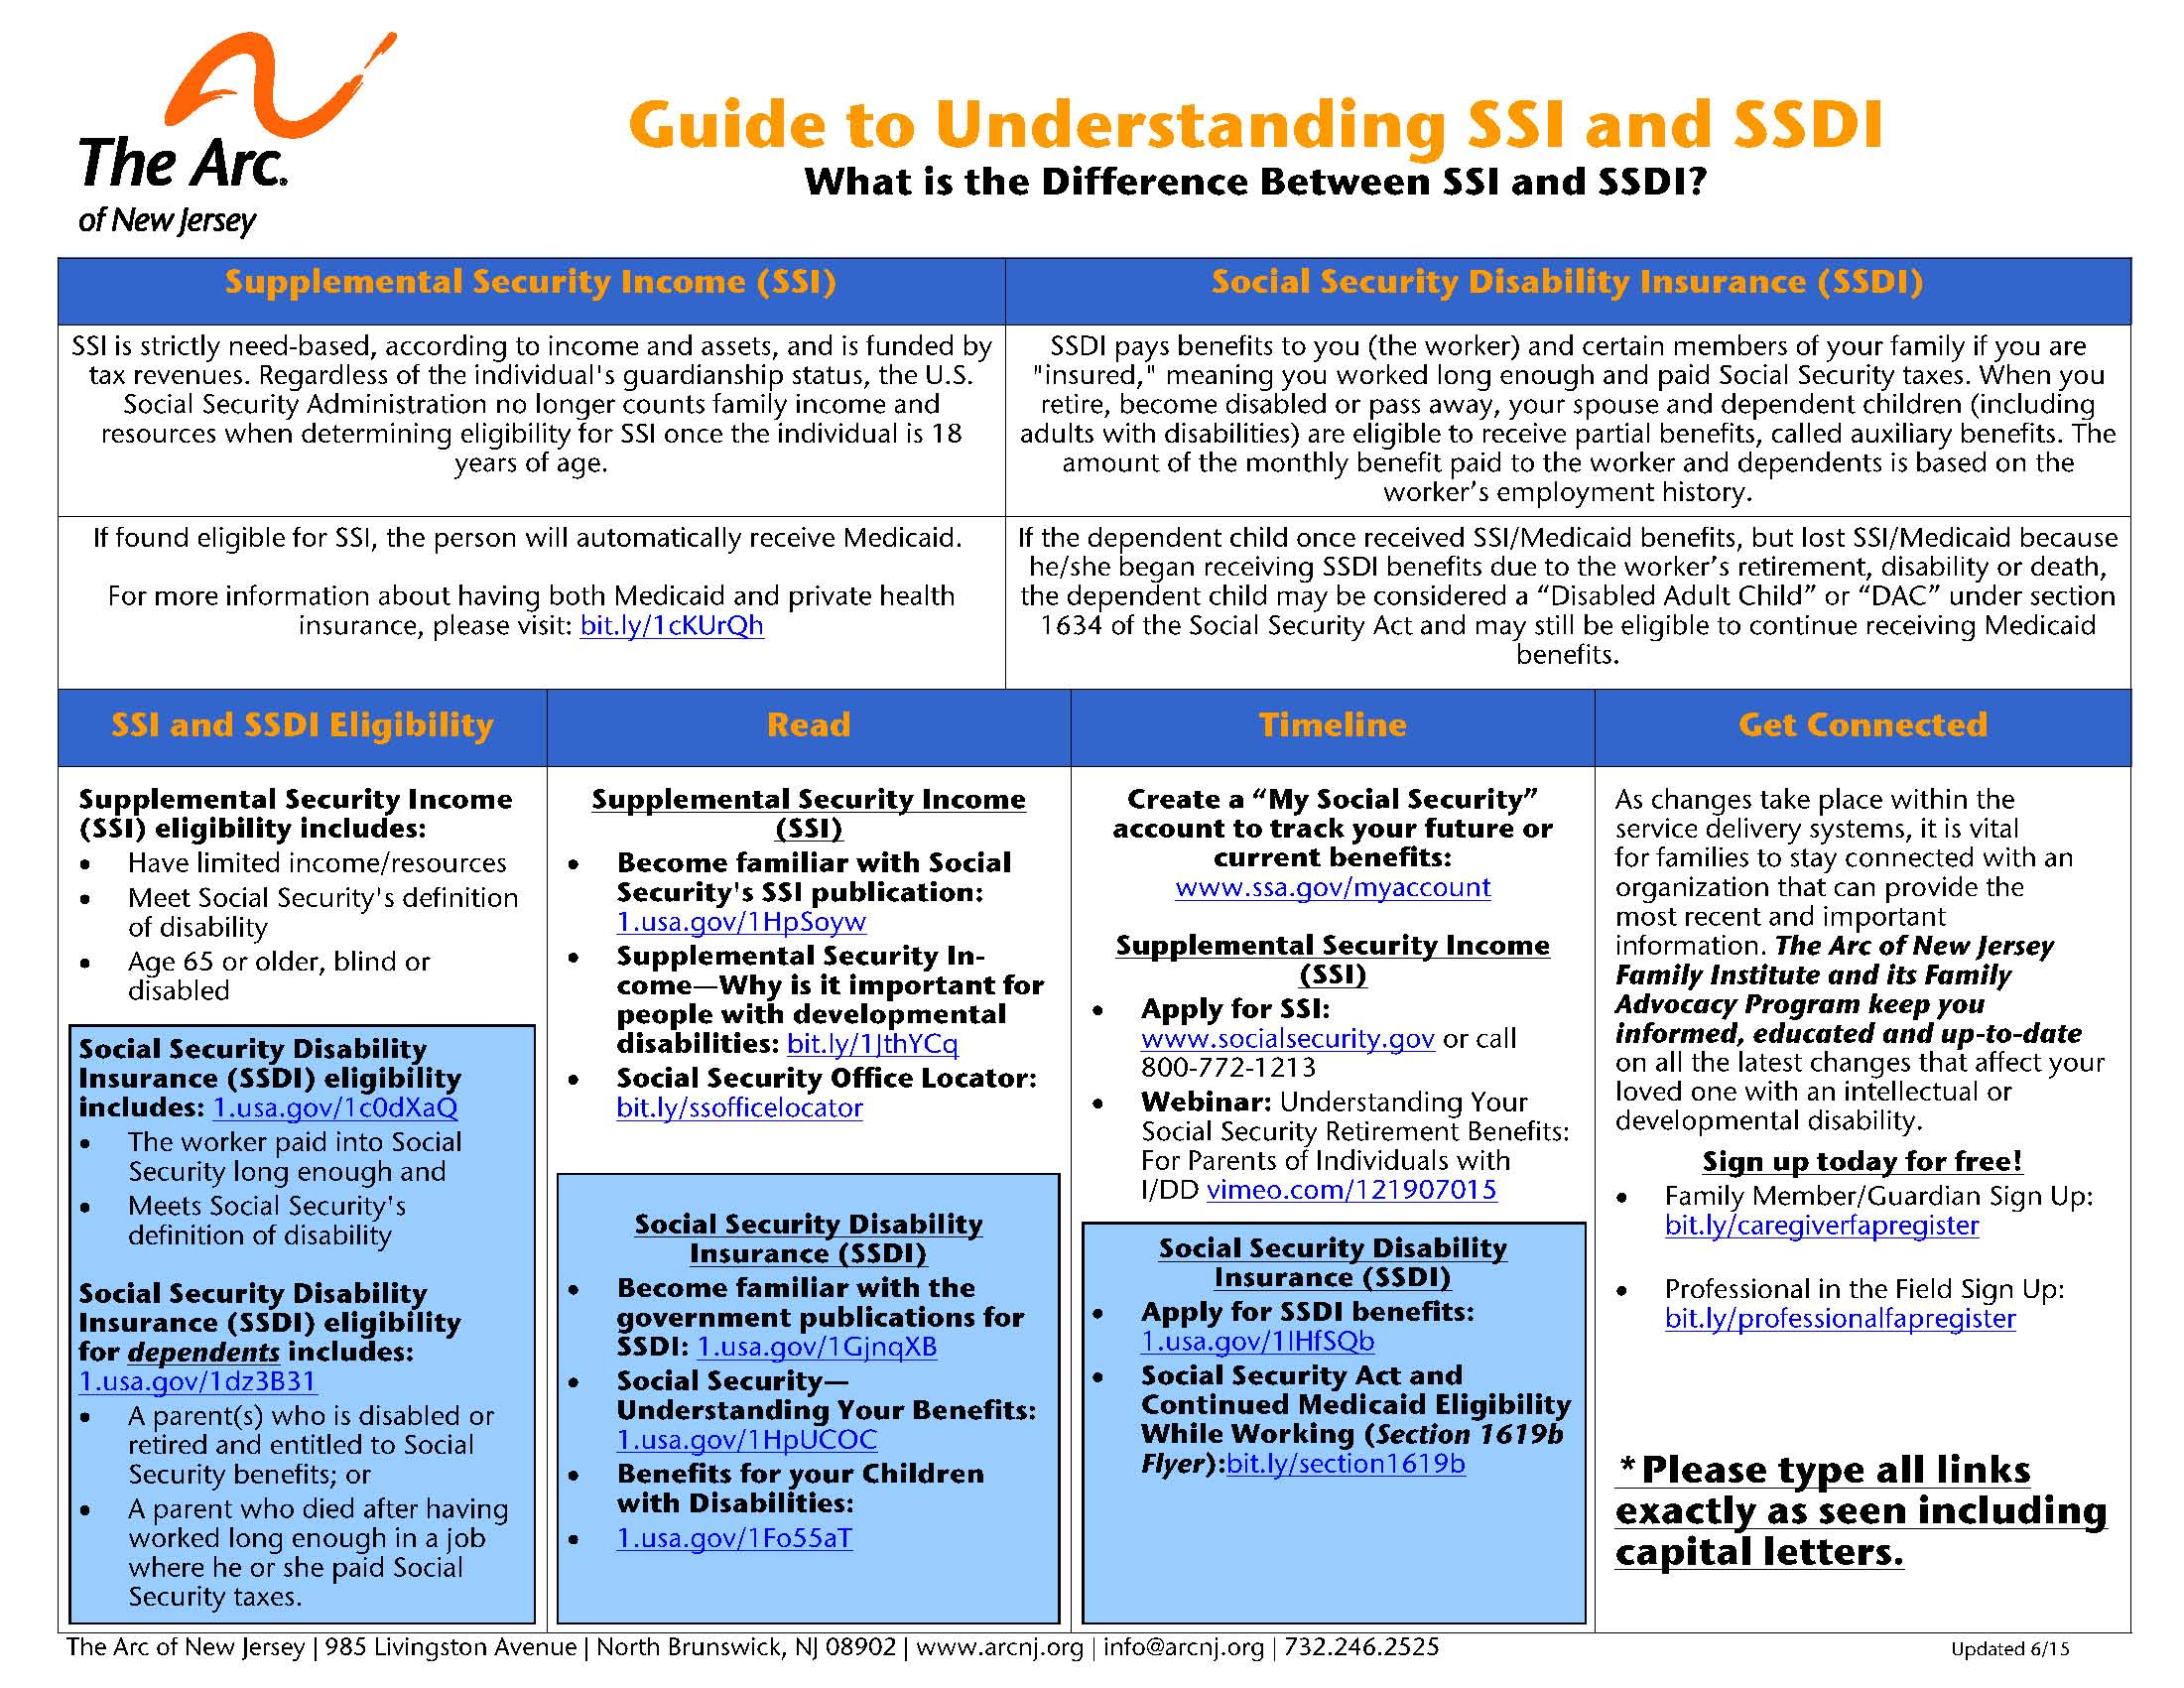 SSI and SSDI: What is the difference?